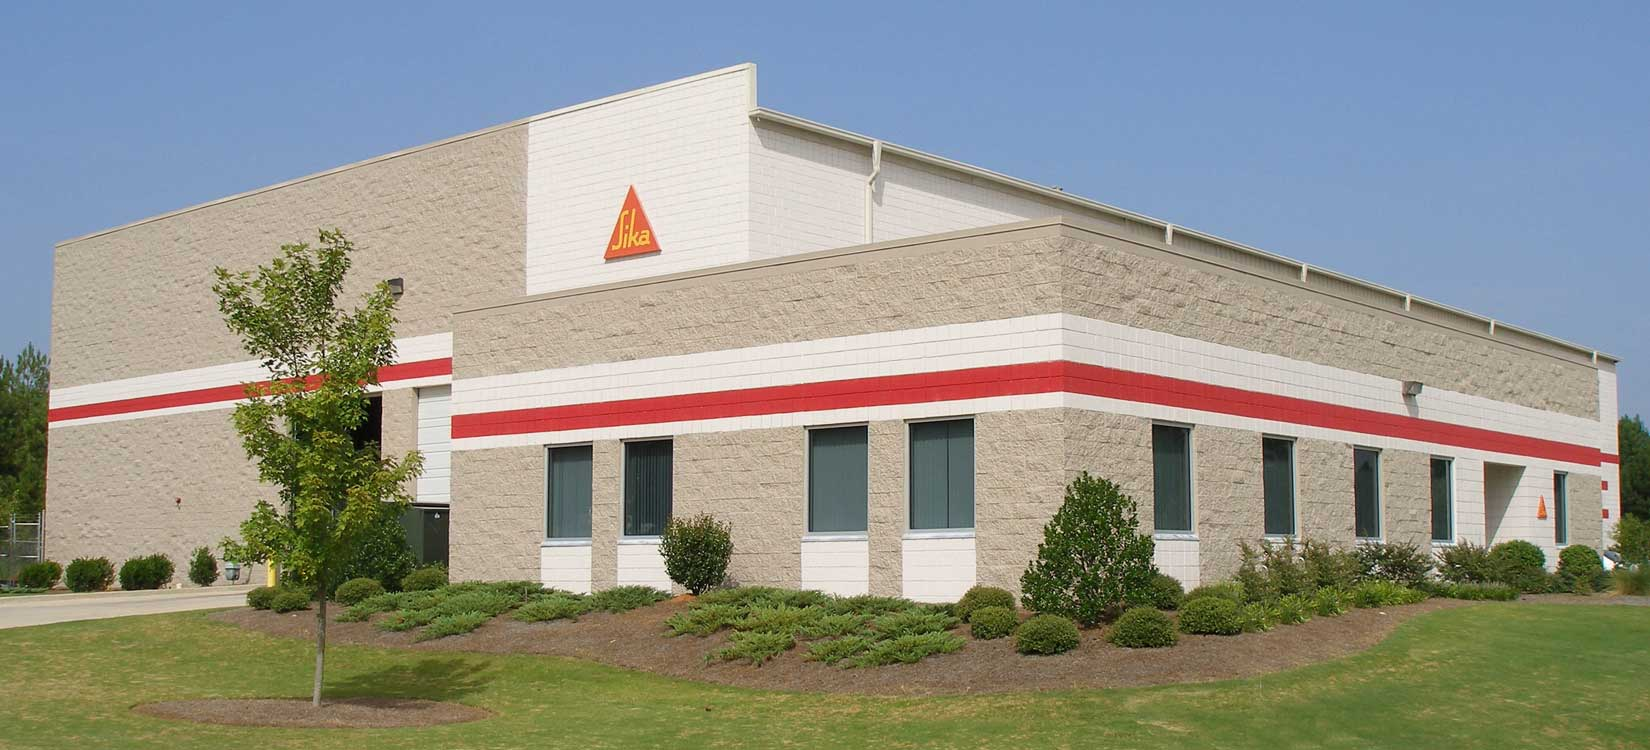 Image of Sika just outside of Atlanta GA.  This is a pre-engineered metal building with a metal roofing system.  Fox Building Company is a commercial construction general contractor specializing in furnish and erect pre-engineered metal building by Nucor Building Systems and Design Build construction.